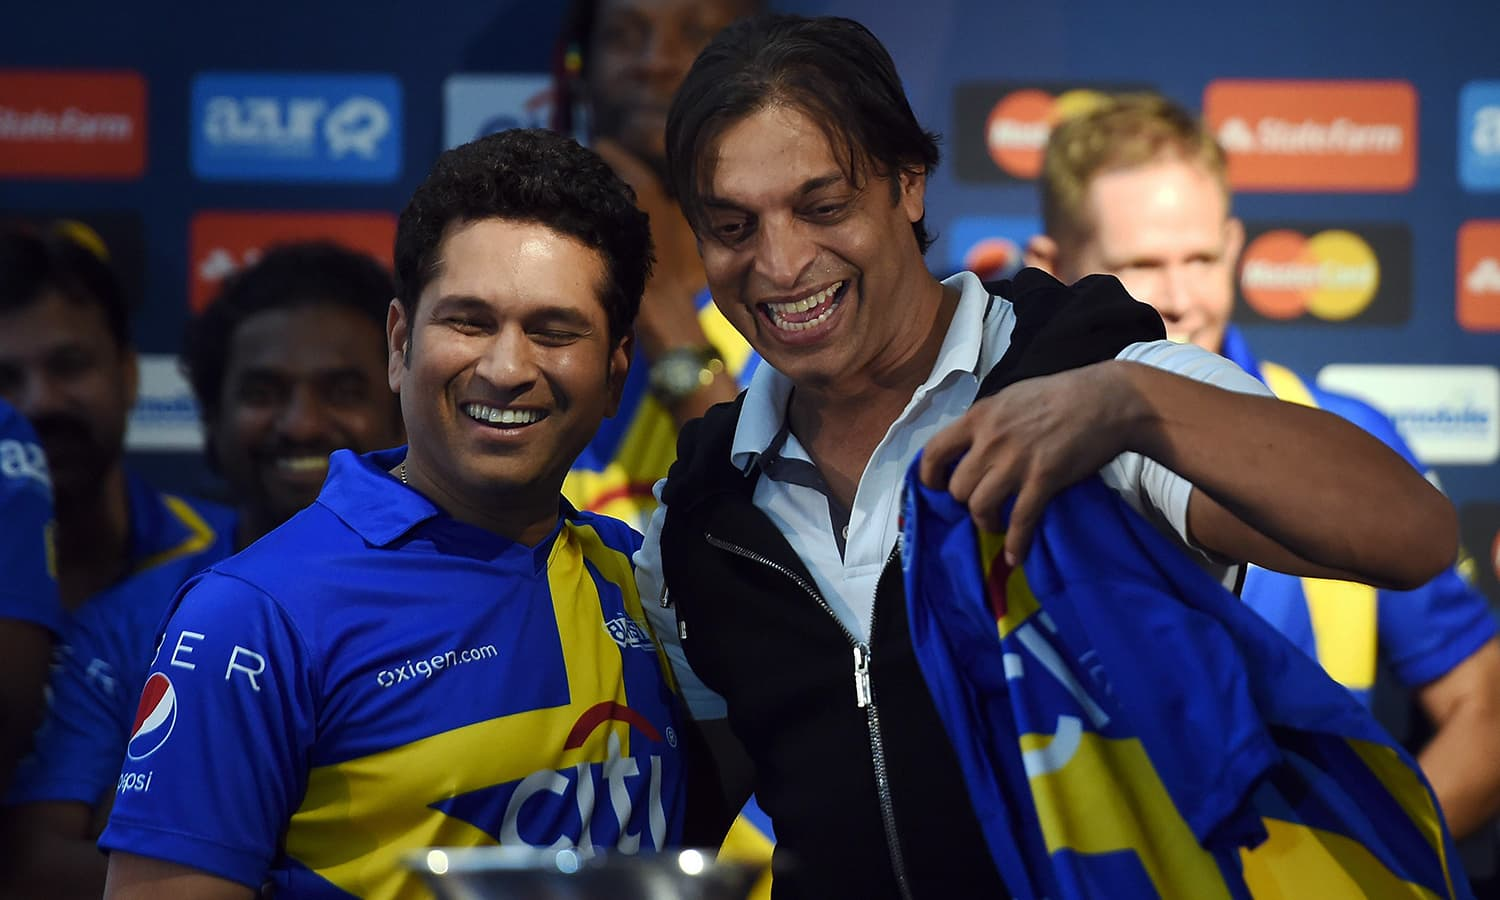 """Former Pakistan's fast bowler Shoaib Akhtar (R) hugs retired Indian cricketer Sachin Tendulkar after he was selected for Tendulkar's team during a press conference in New York on November 5, 2015. Tendulkar and Warne will lead a lineup of renowned cricket players from around the world in the inaugural """"Cricket All-Stars,"""" a three-game series to be played in Major League Baseball stadiums in New York , Houston and Los Angeles, to promote cricket the US. AFP PHOTO/JEWEL SAMAD"""